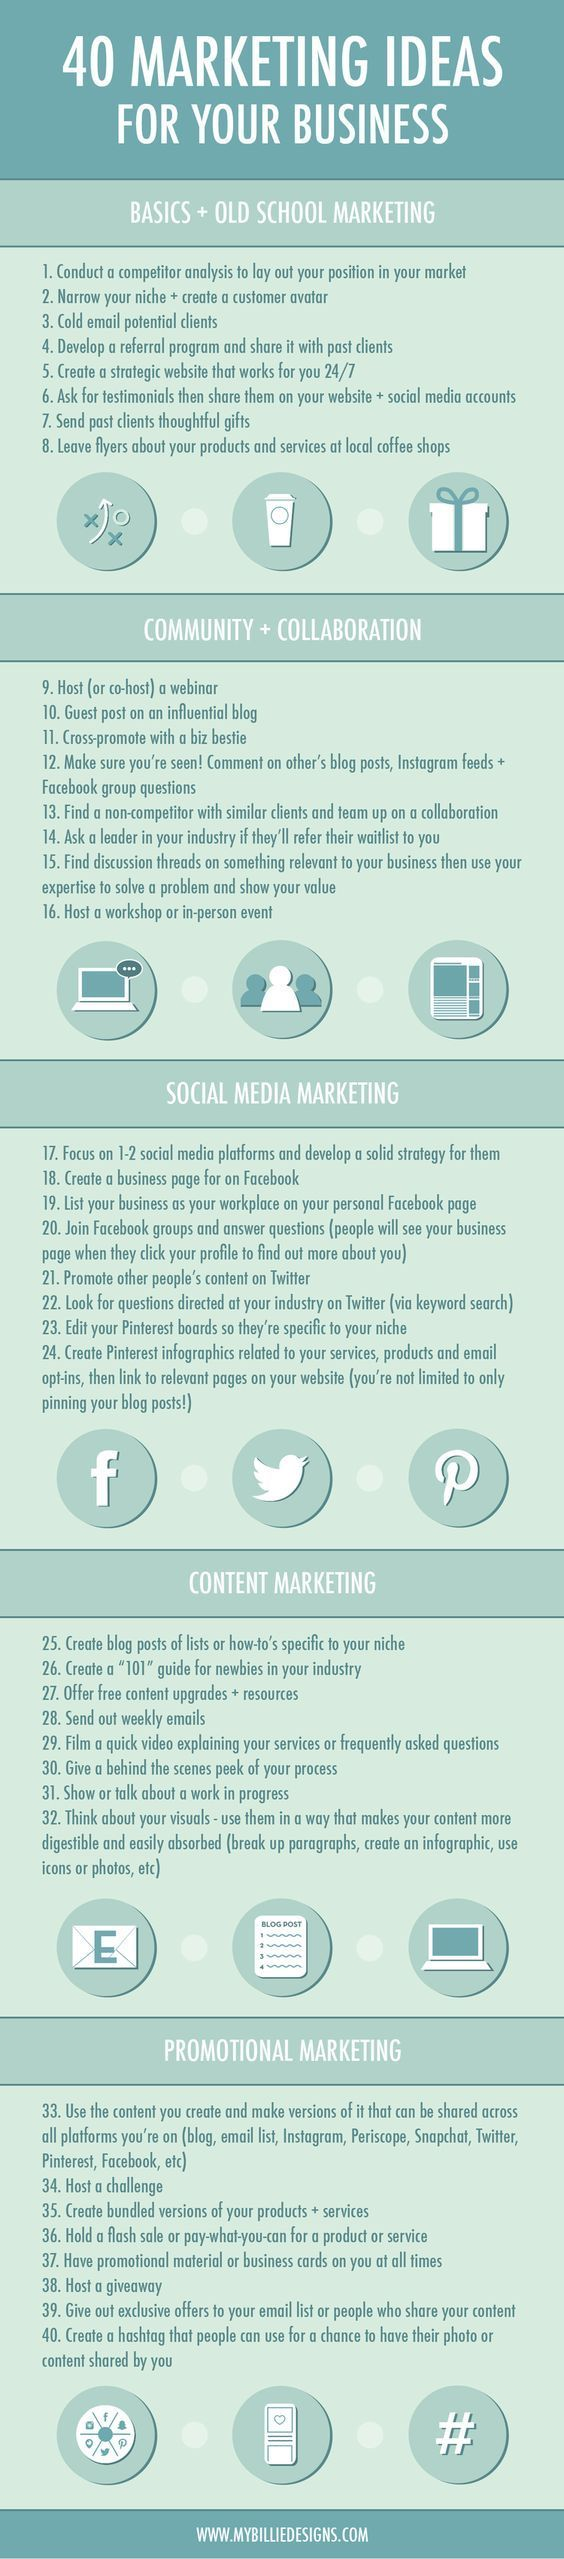 """40 Marketing Ideas For Your Business - <a class=""""pintag"""" href=""""/explore/infographic/"""" title=""""#infographic explore Pinterest"""">#infographic</a>"""